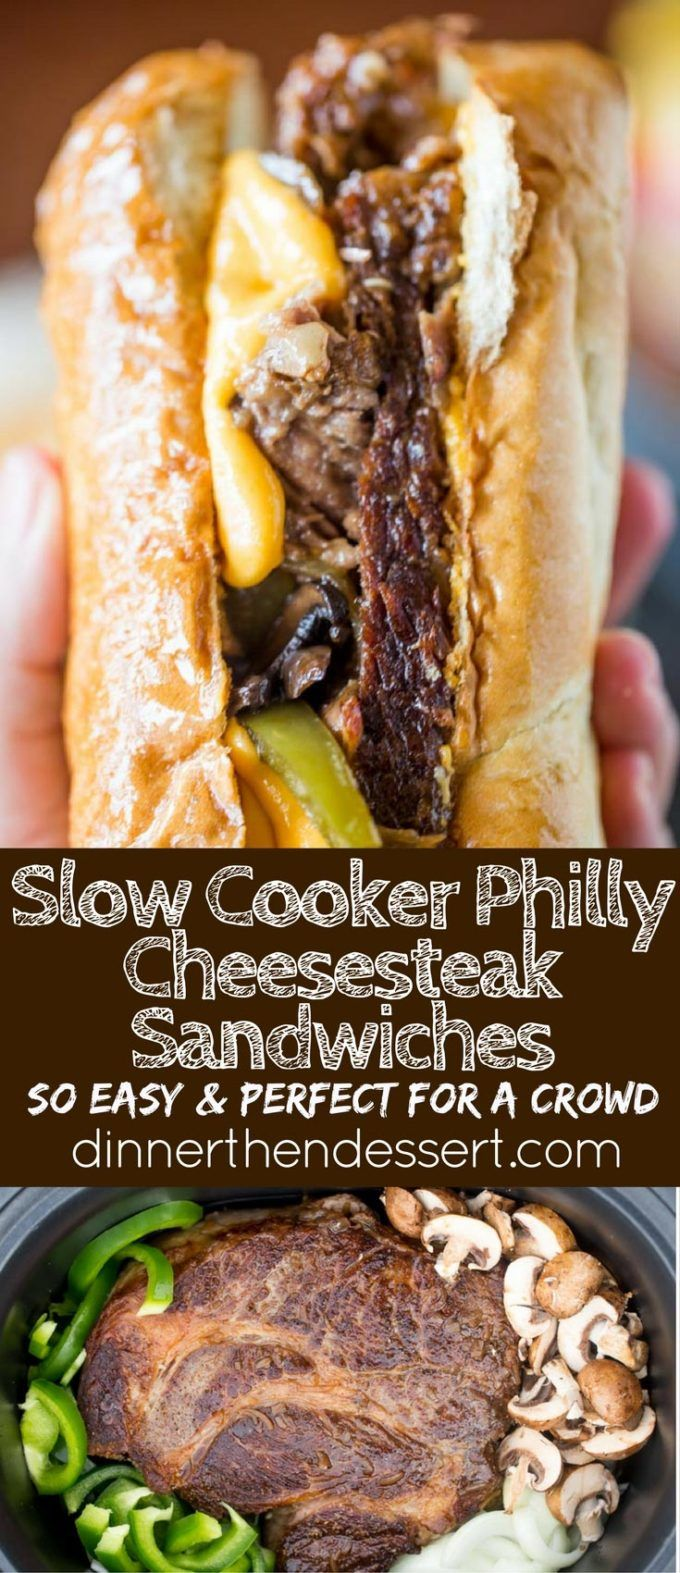 Slow Cooker Philly Cheese Steak Sandwiches that are so tender and flavorful you'll feel like you're in Philly. Perfect for a crowd!